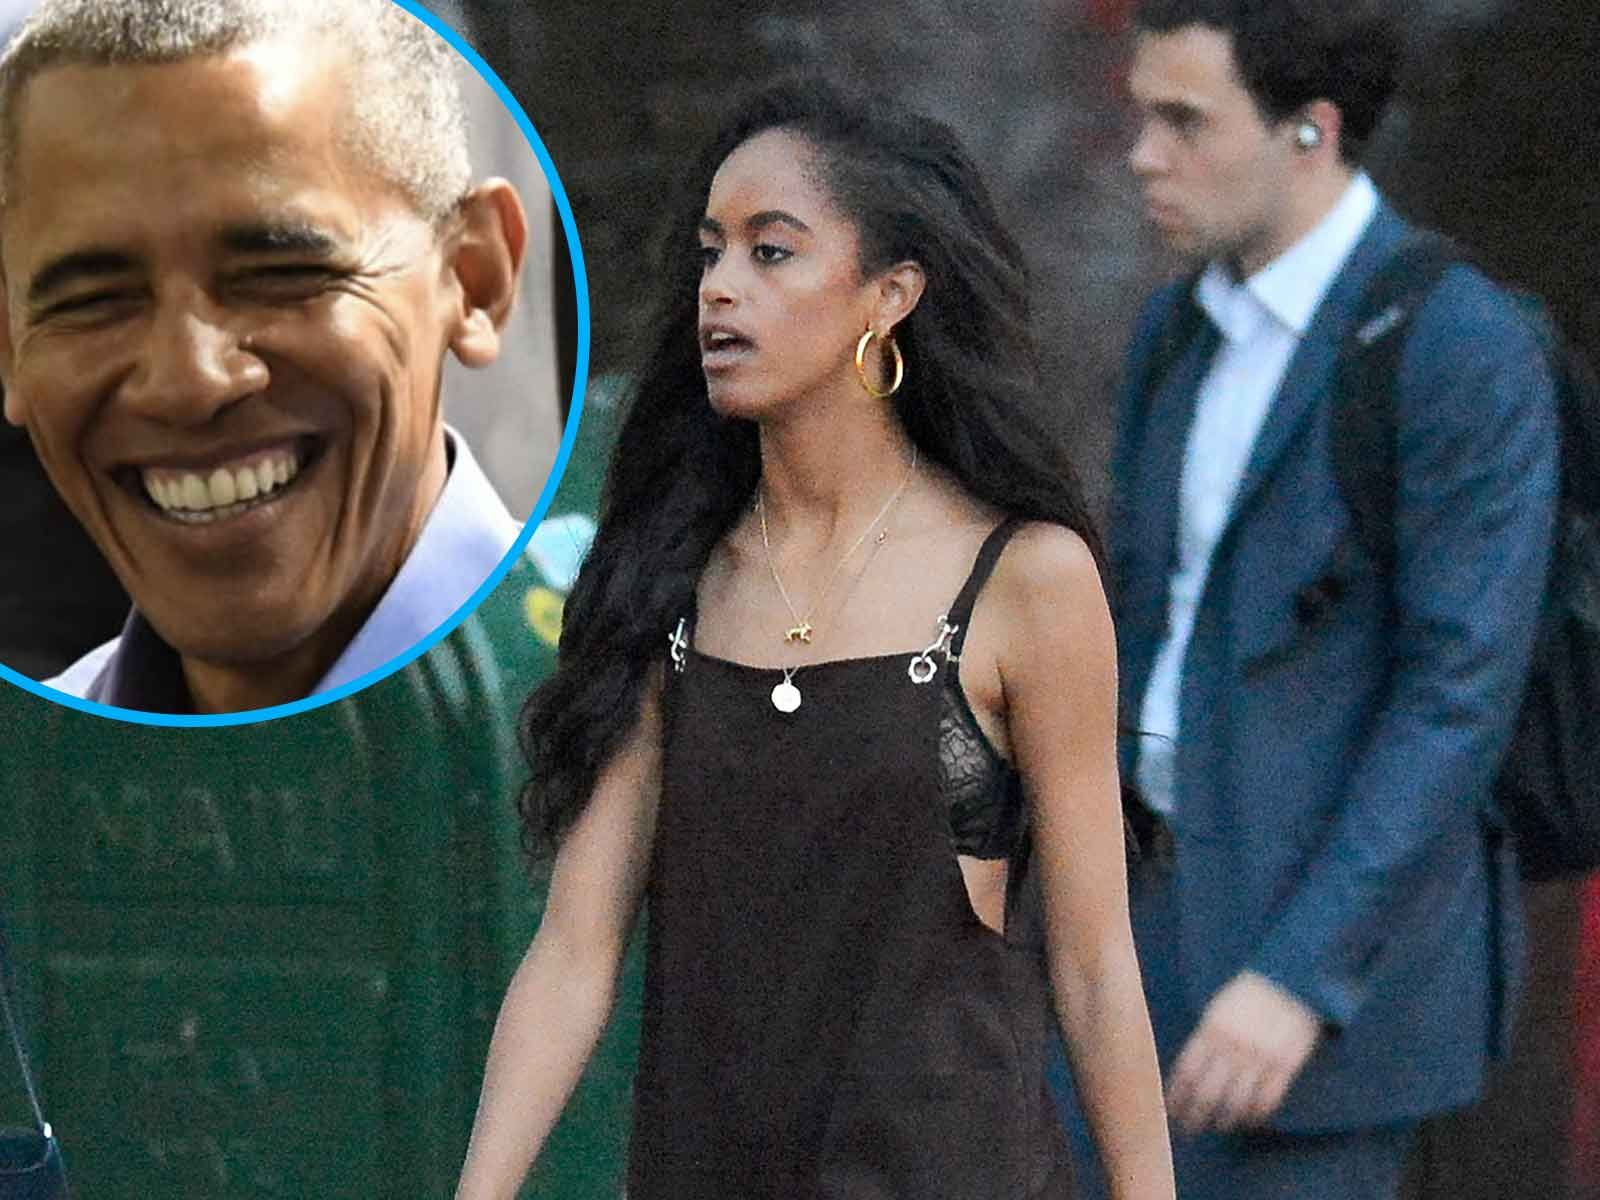 Malia Obama Mulls Over Birthday Gift for Barack While at